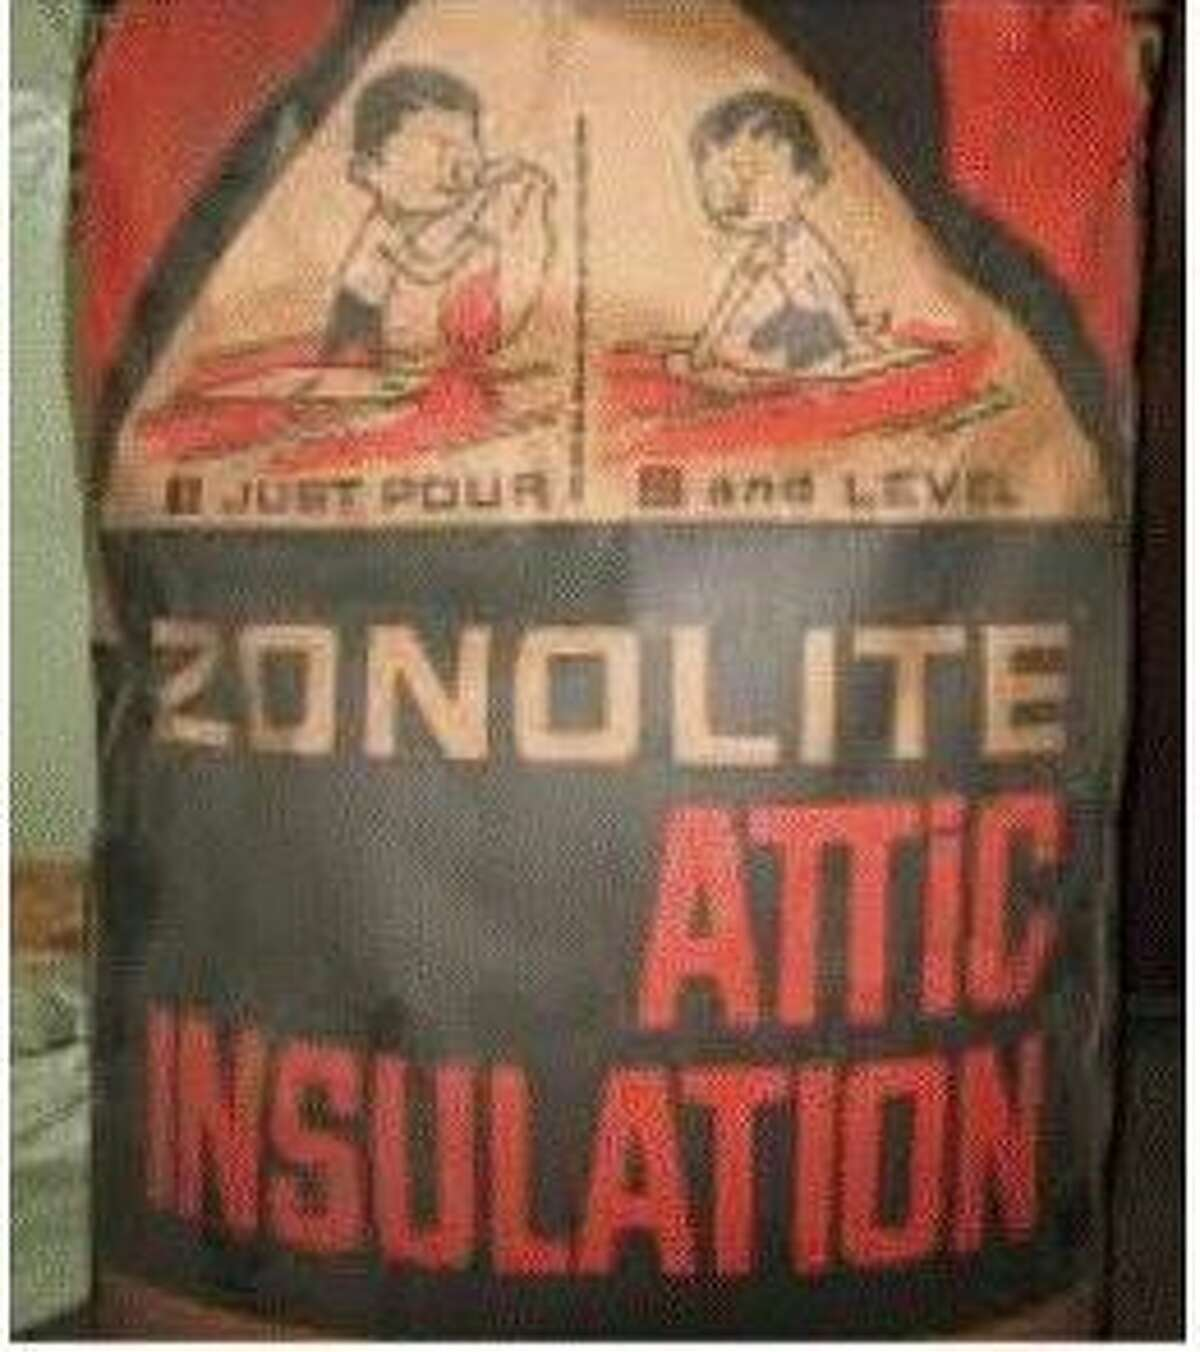 Vermiculite is a mineral that was commonly used as insulation in homes built before 1990, and likely contains hazardous asbestos. Sold under the brand name Zonolite, it is grayish abd pebble-like.